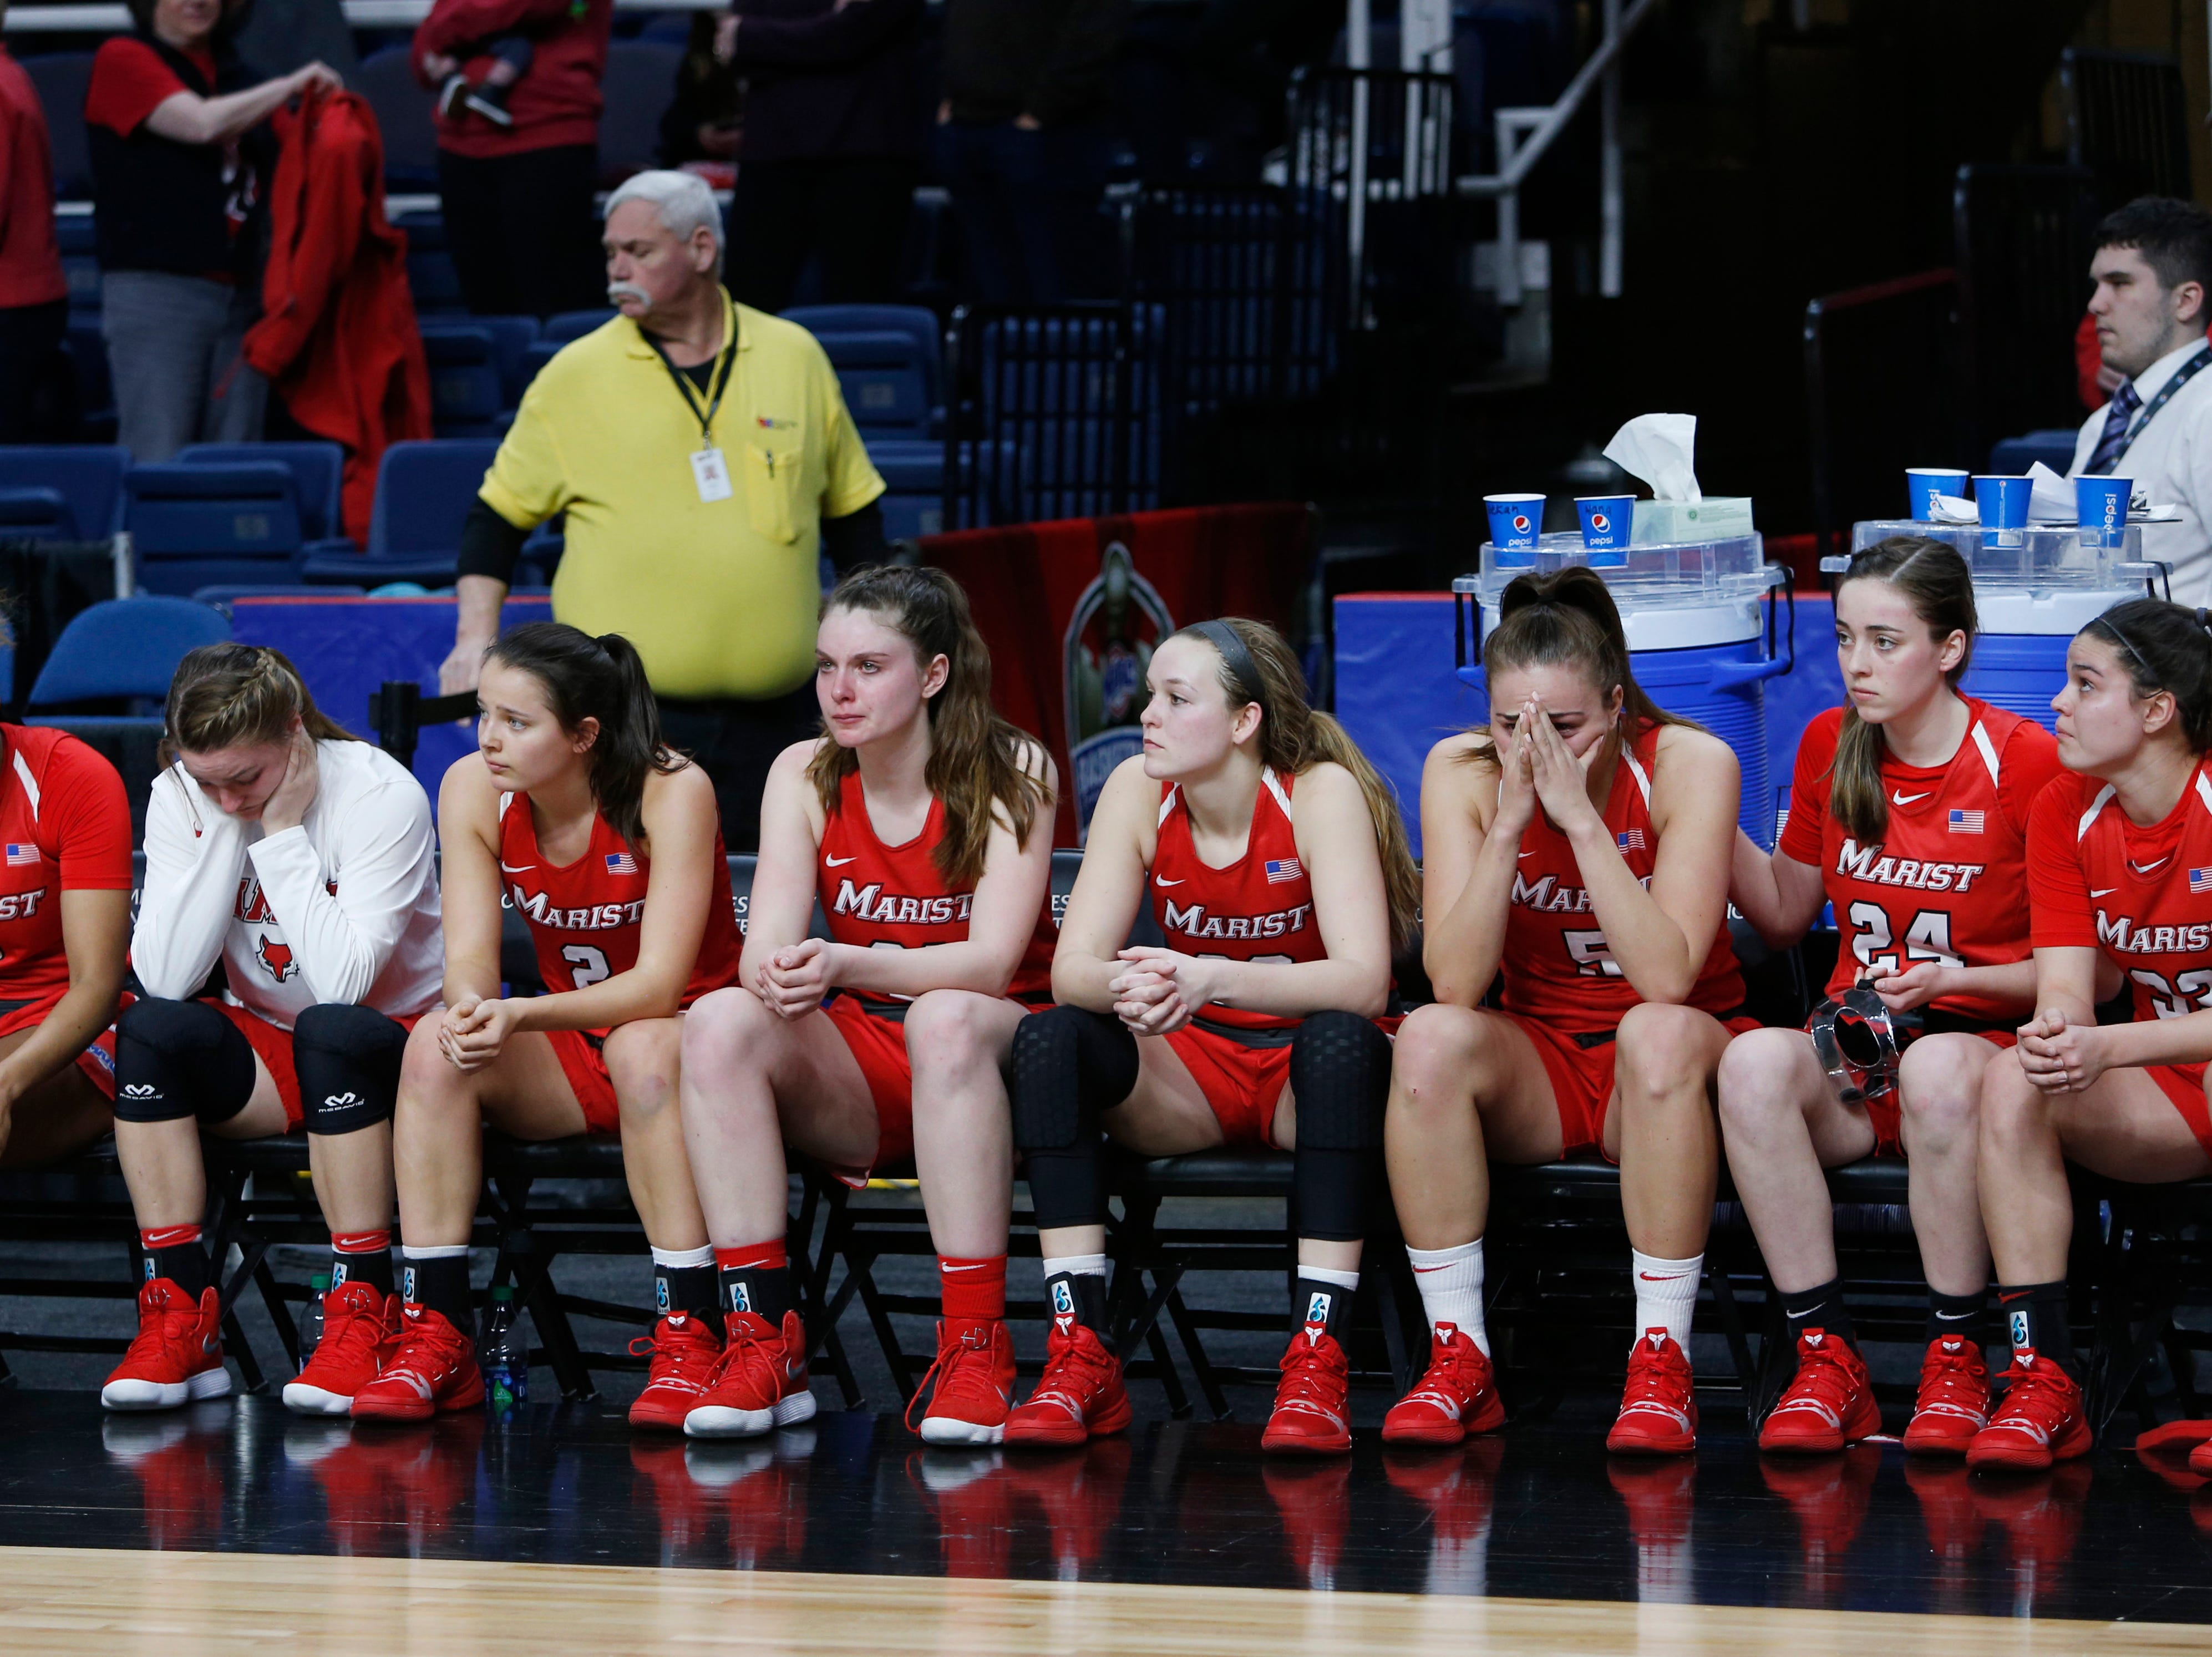 Marist's bench react to losing to Quinnipiac 81/51 in the MAAC championship at the Times Union Center in Albany on March 11 2019.